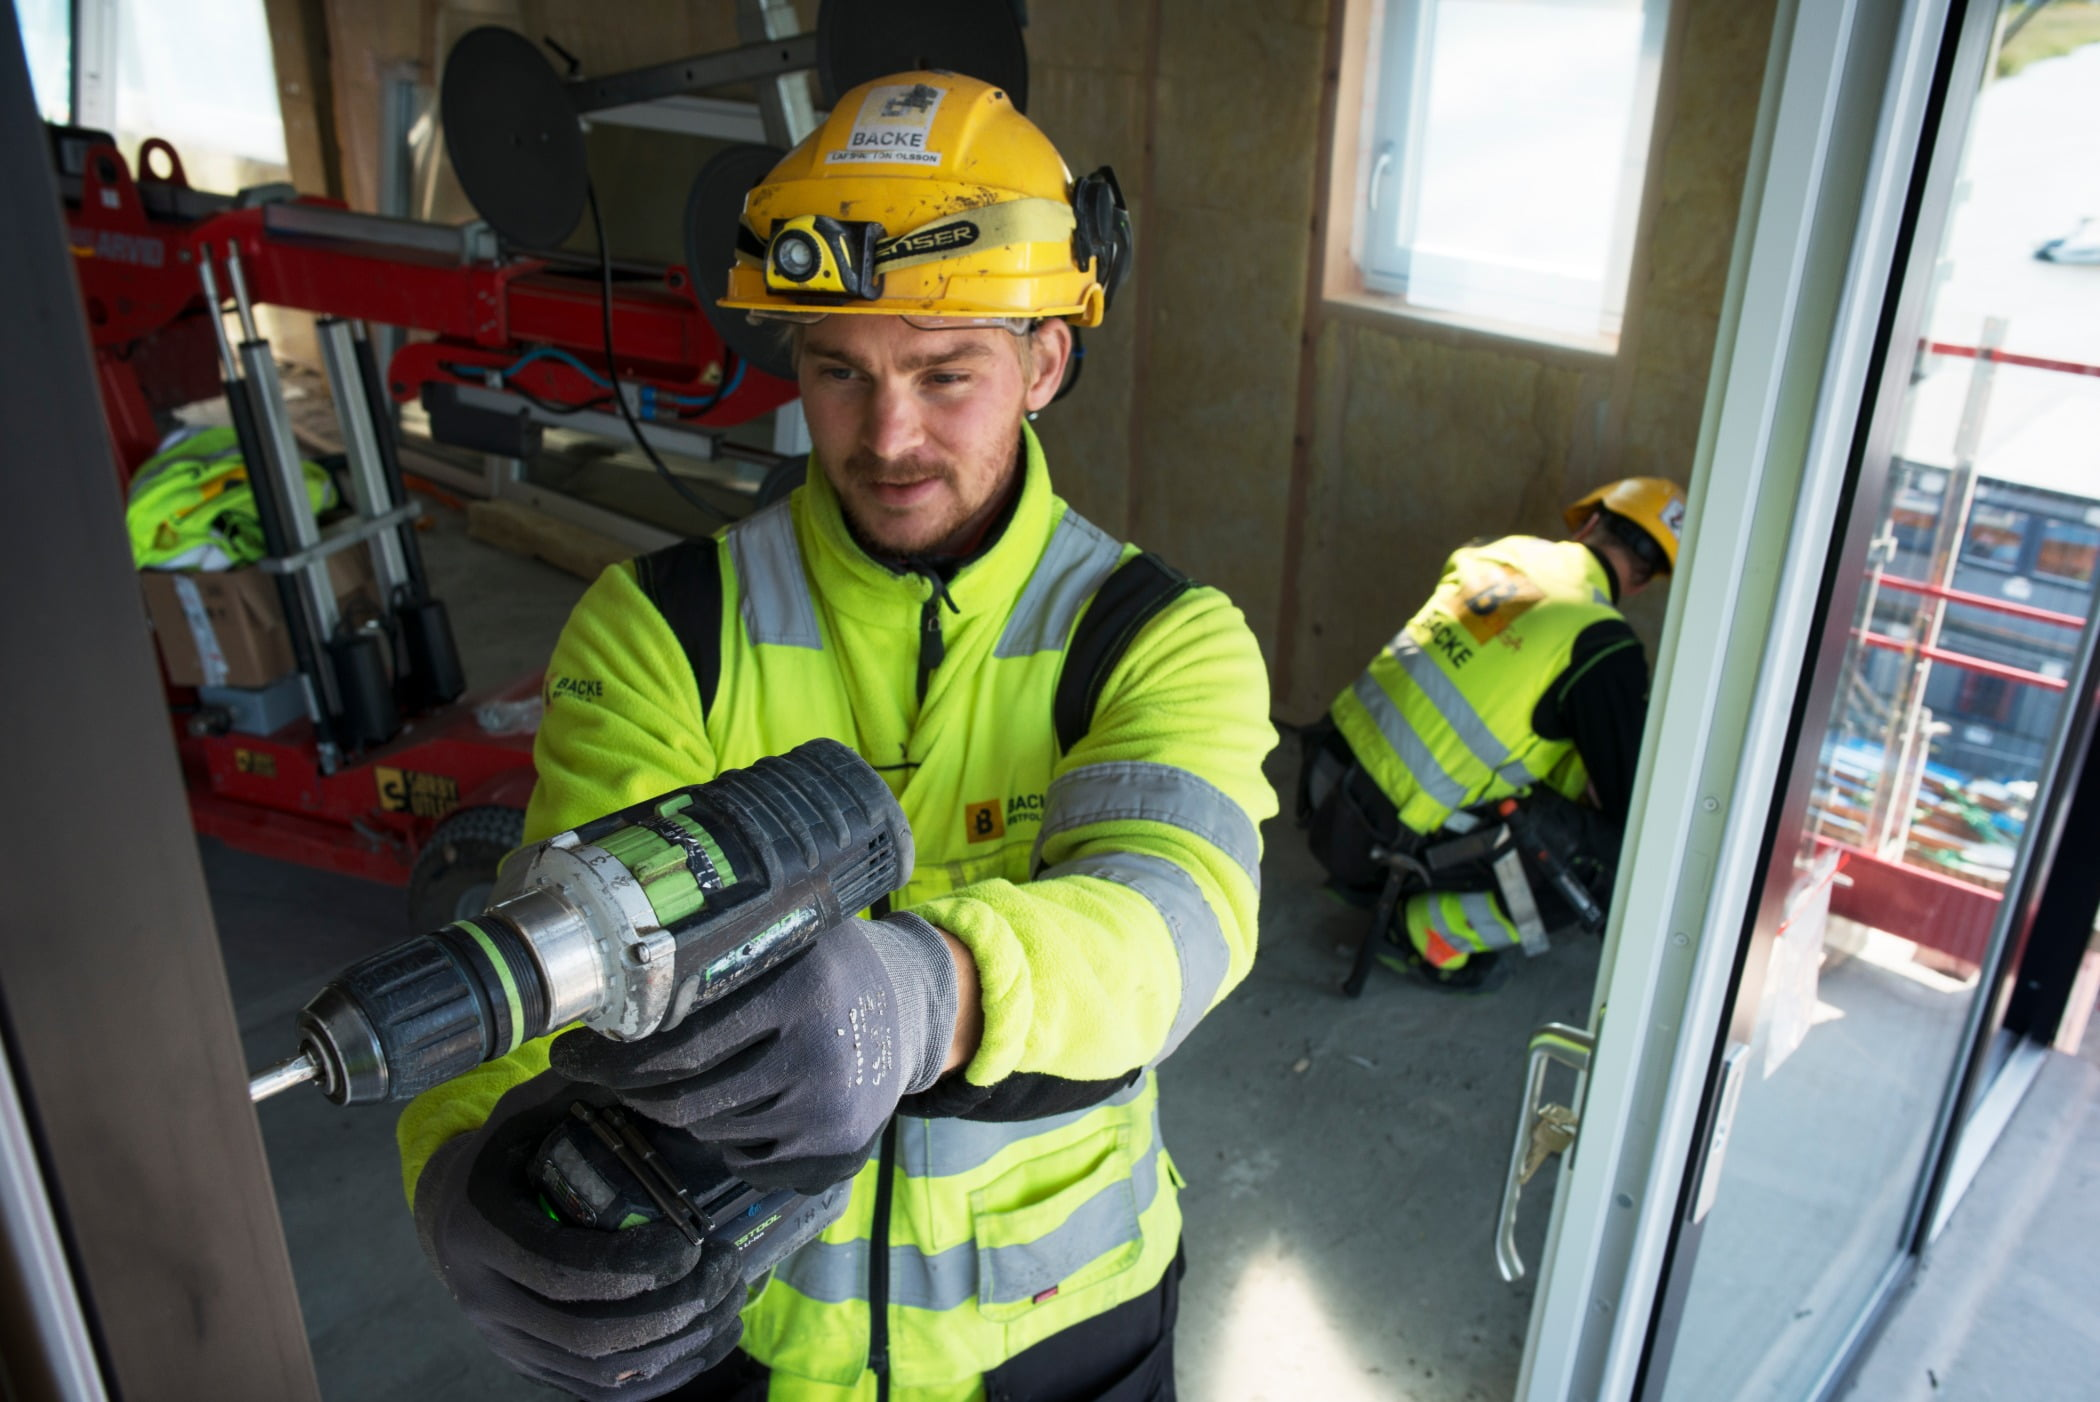 Hard hat, High-visibility clothing, Safety glove, Motor vehicle, Fire department, Helmet, Workwear, Tradesman, Yellow